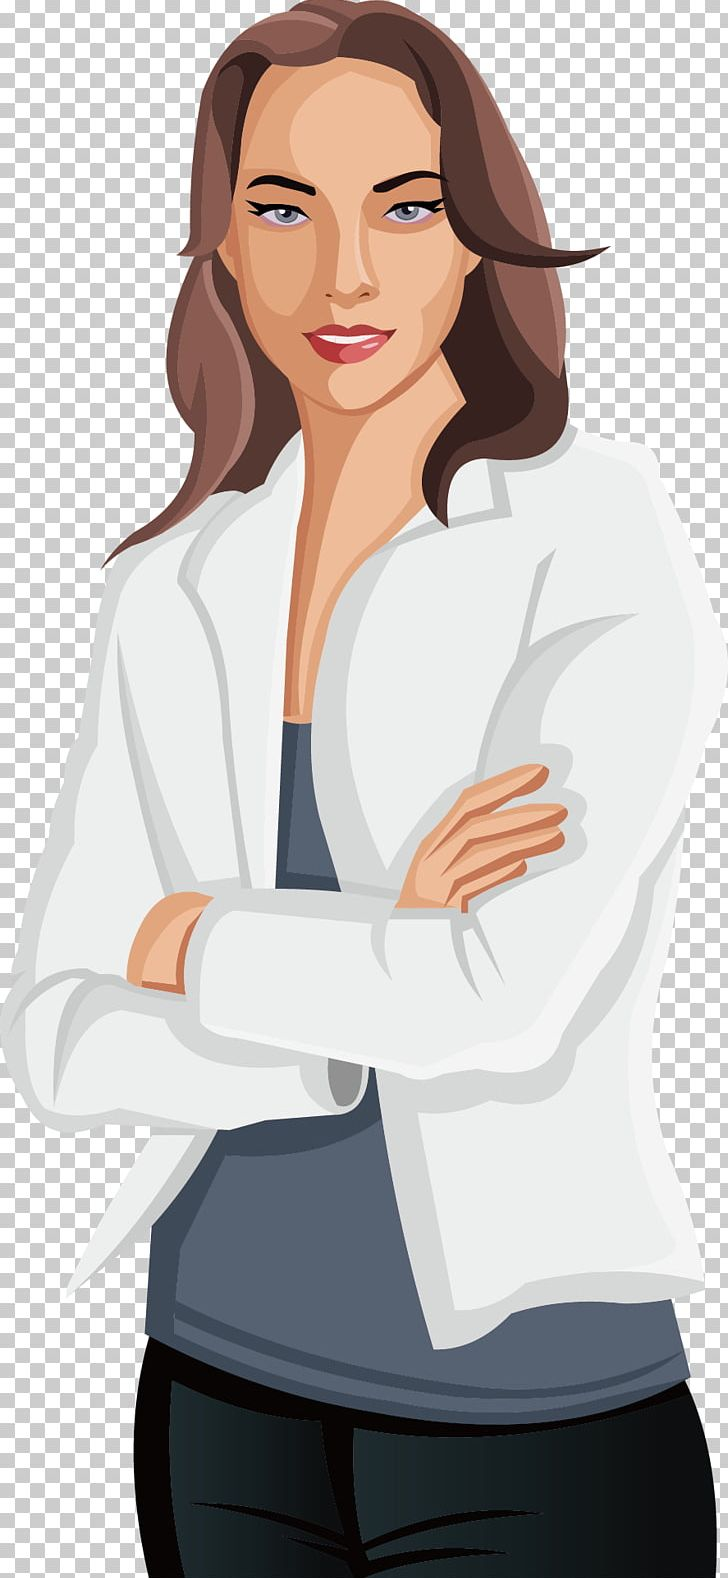 Woman Cartoon Illustration PNG, Clipart, Arm, Black Hair, Business, Business Woman, Cartoon Woman Free PNG Download